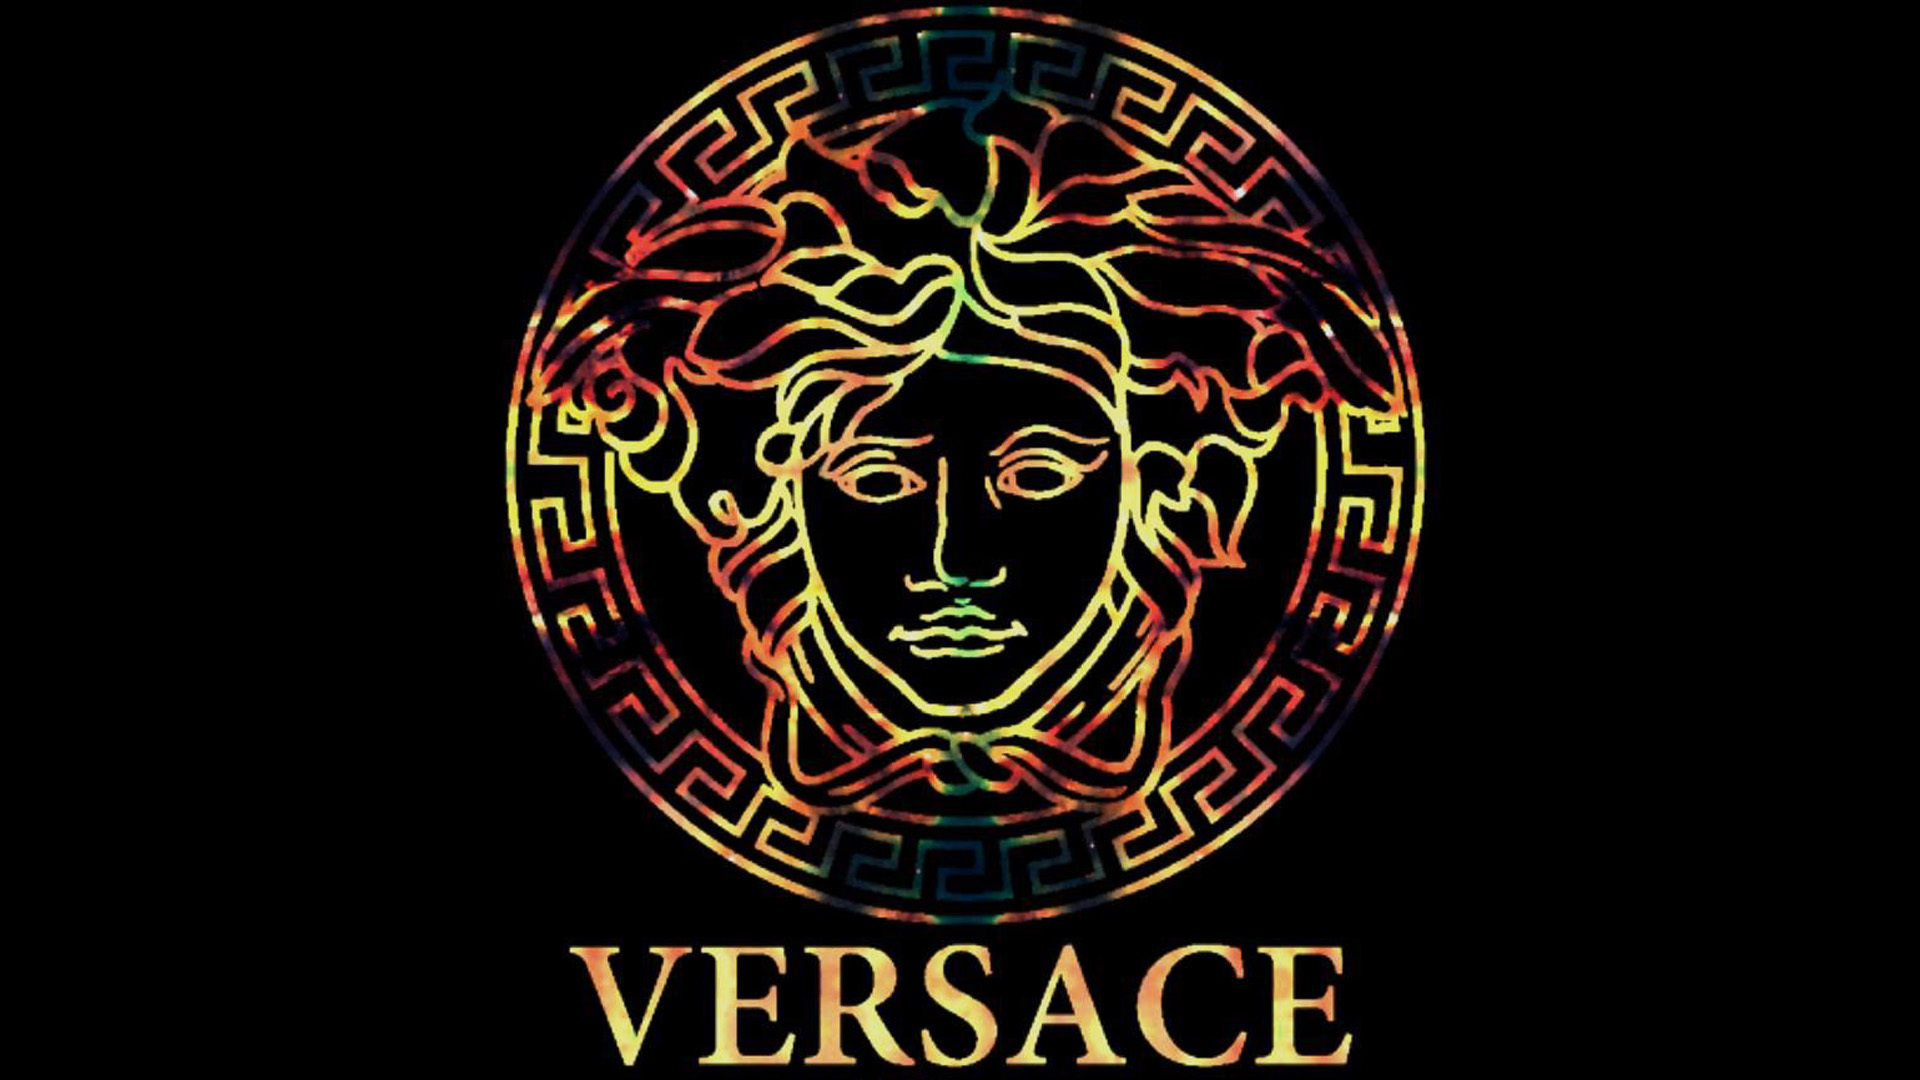 The Gallery For Versace Twitter Background HD Wallpapers Download Free Images Wallpaper [1000image.com]